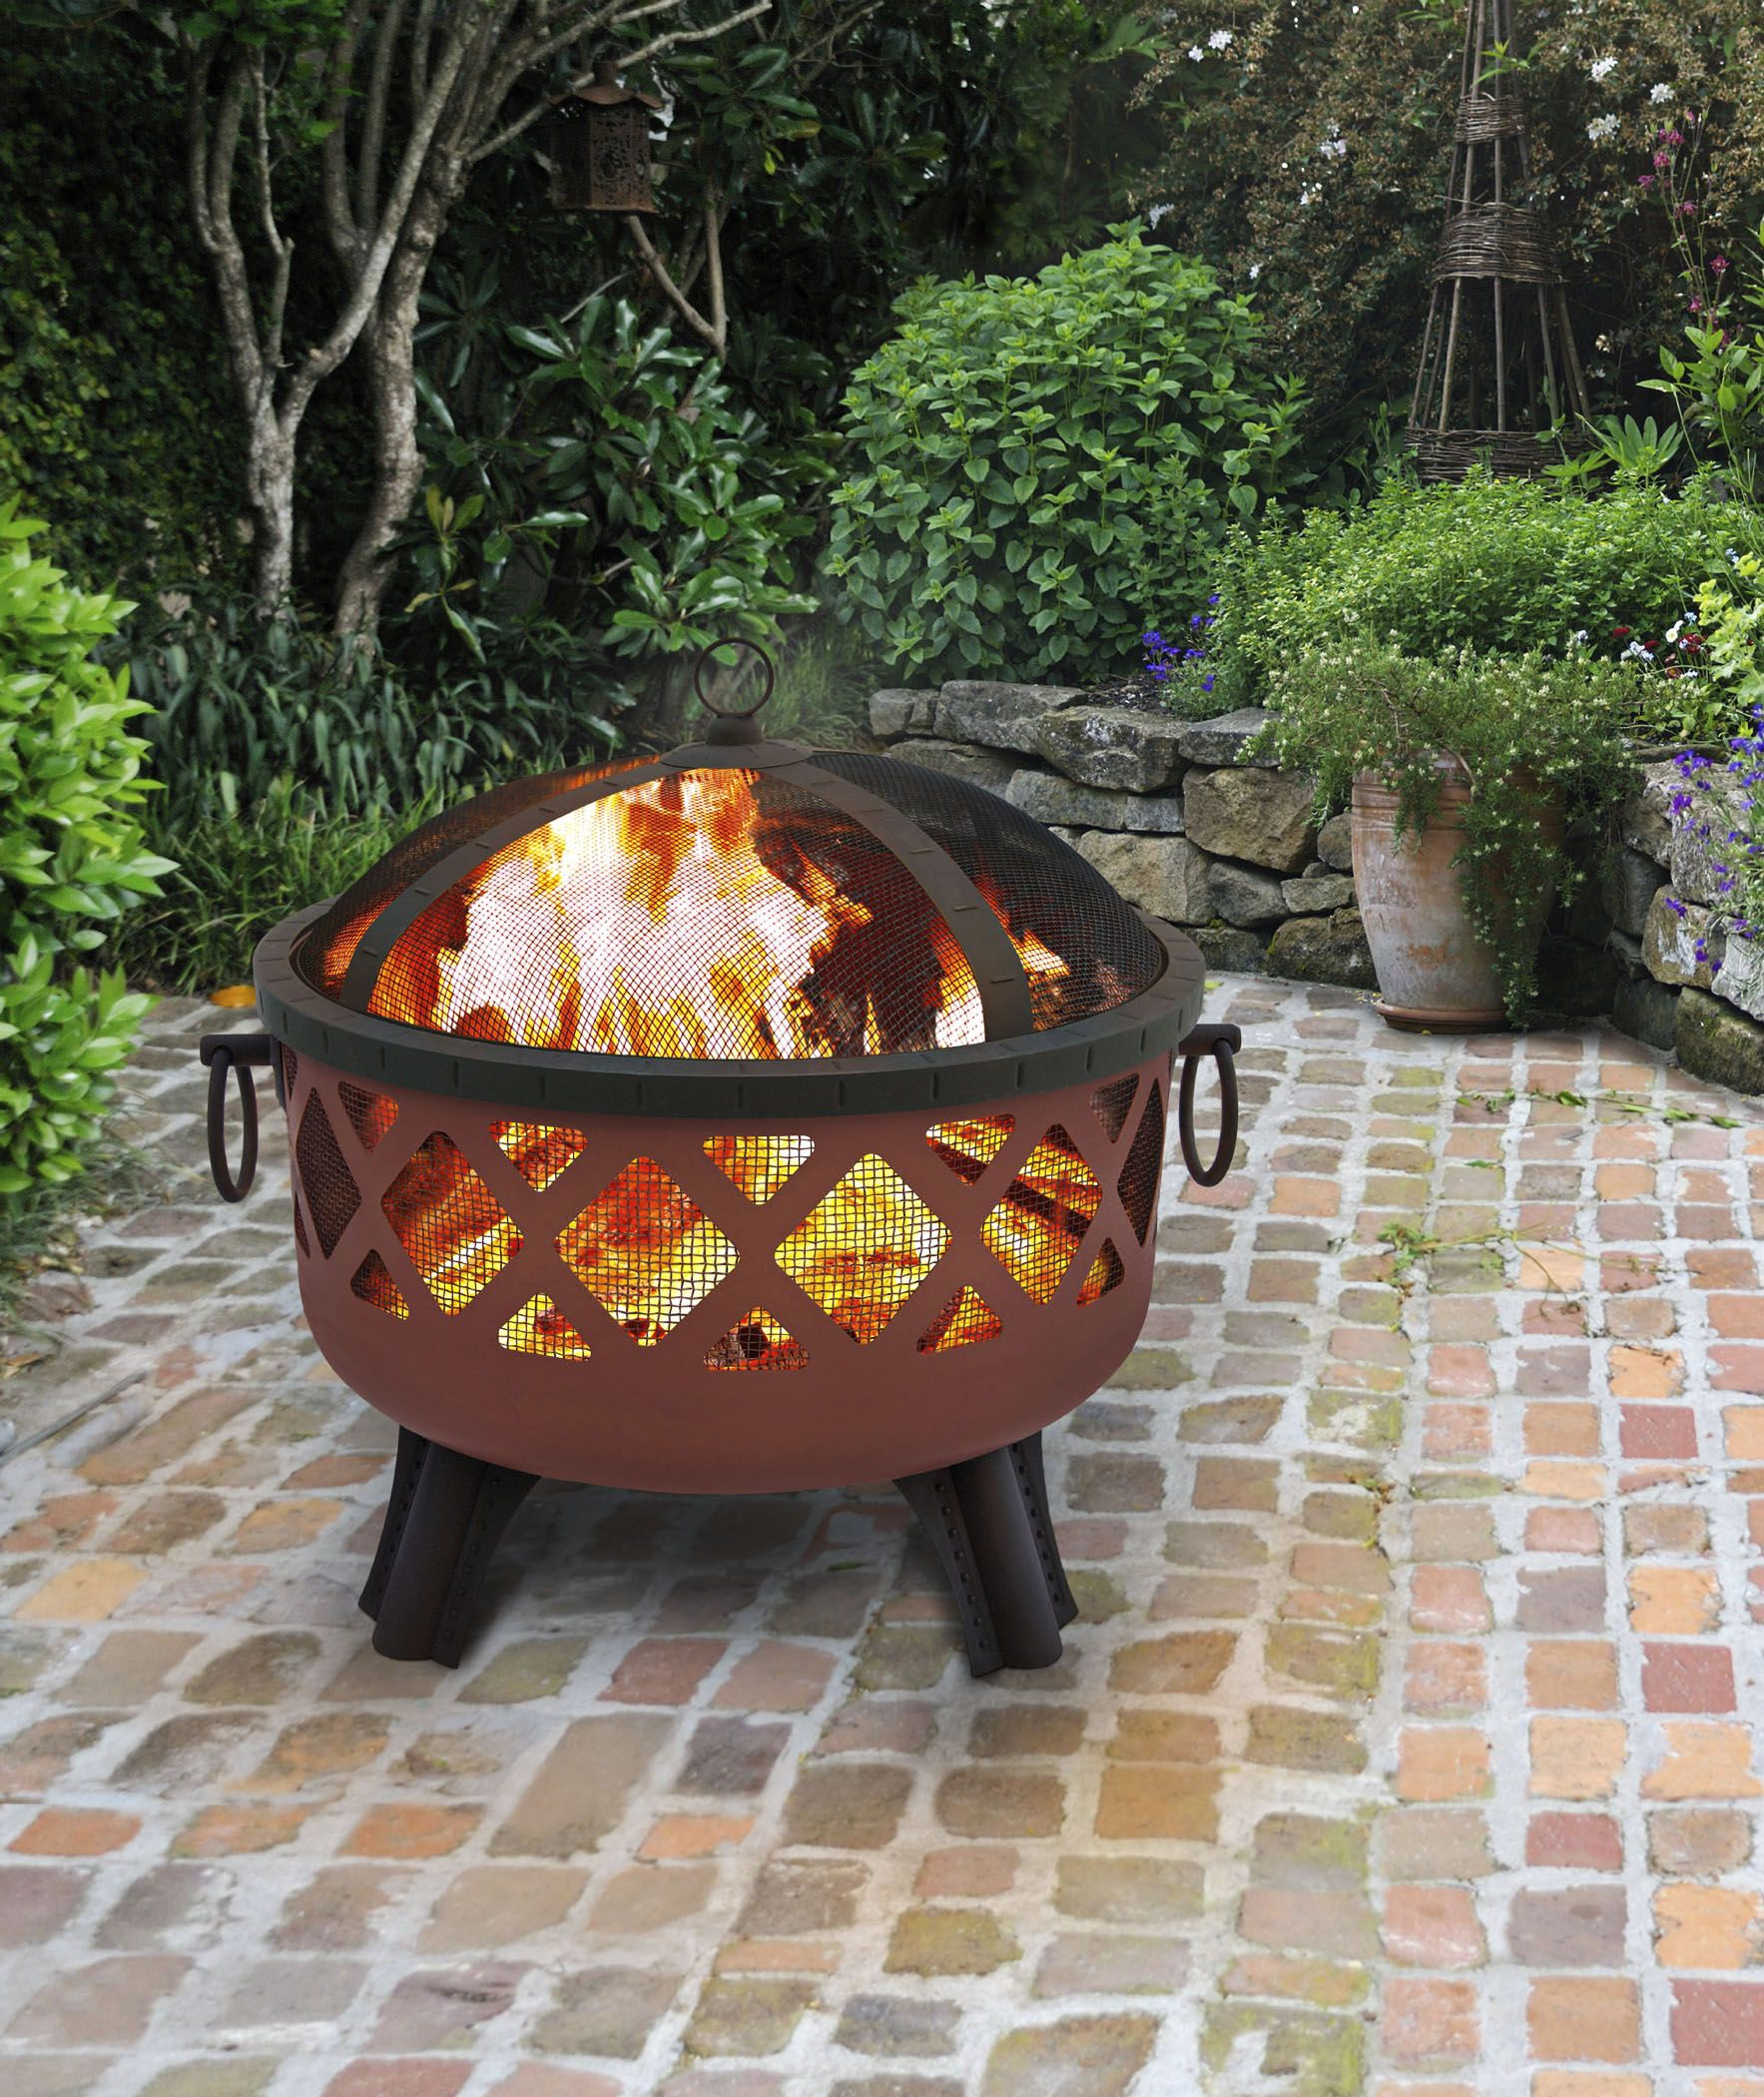 13 Best Outdoor Fire Pit Ideas To DIY Or Buy   Building Backyard Fire Pits